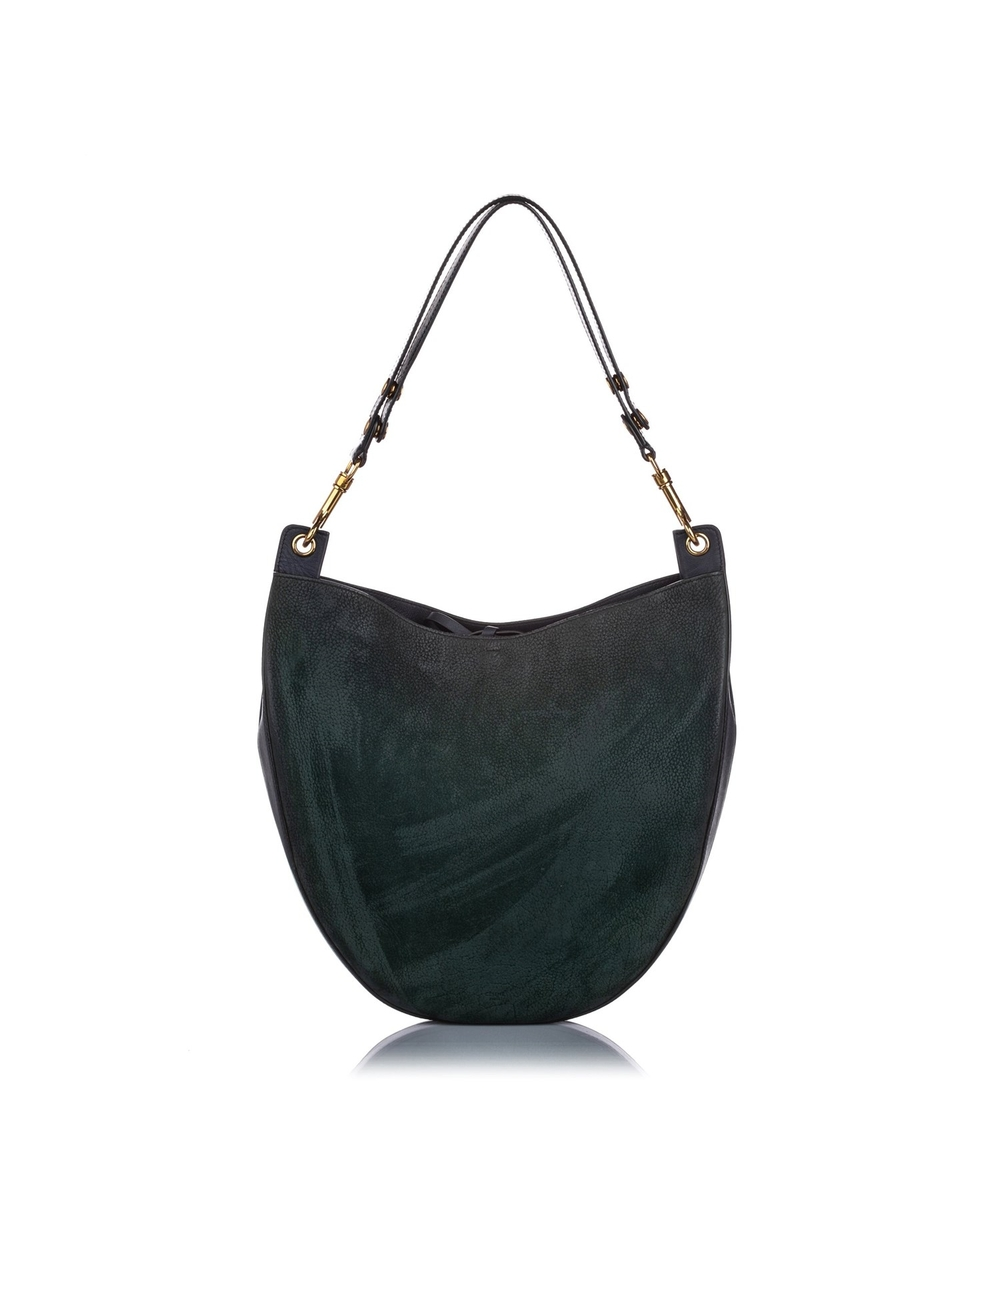 Product Details: Green Celine Nubuck Leather Hobo Bag. This Hobo features a nubuck leather body, a f